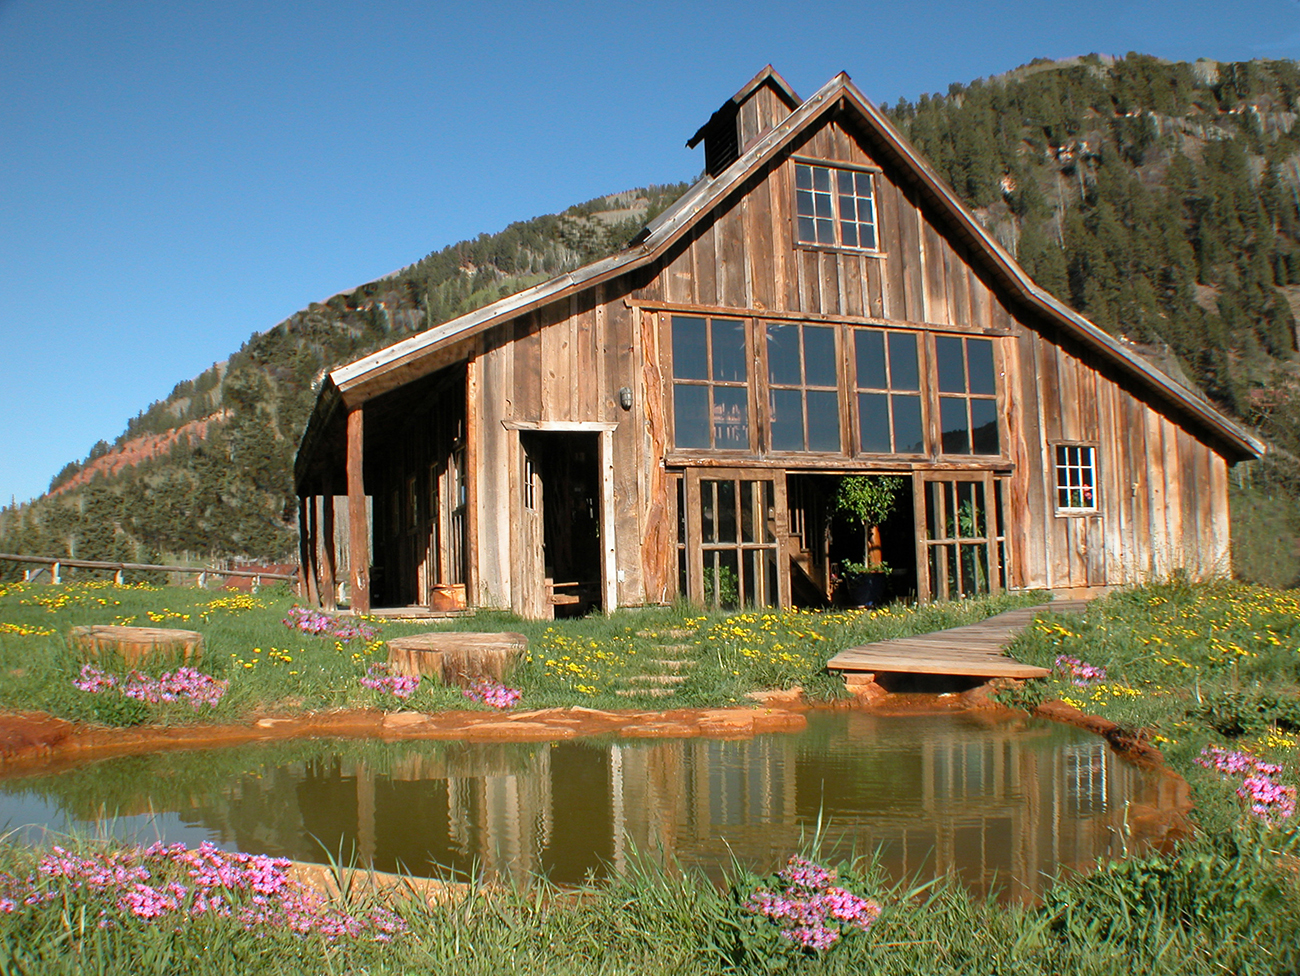 Dunton Hot Springs is a small property with only 13 rooms